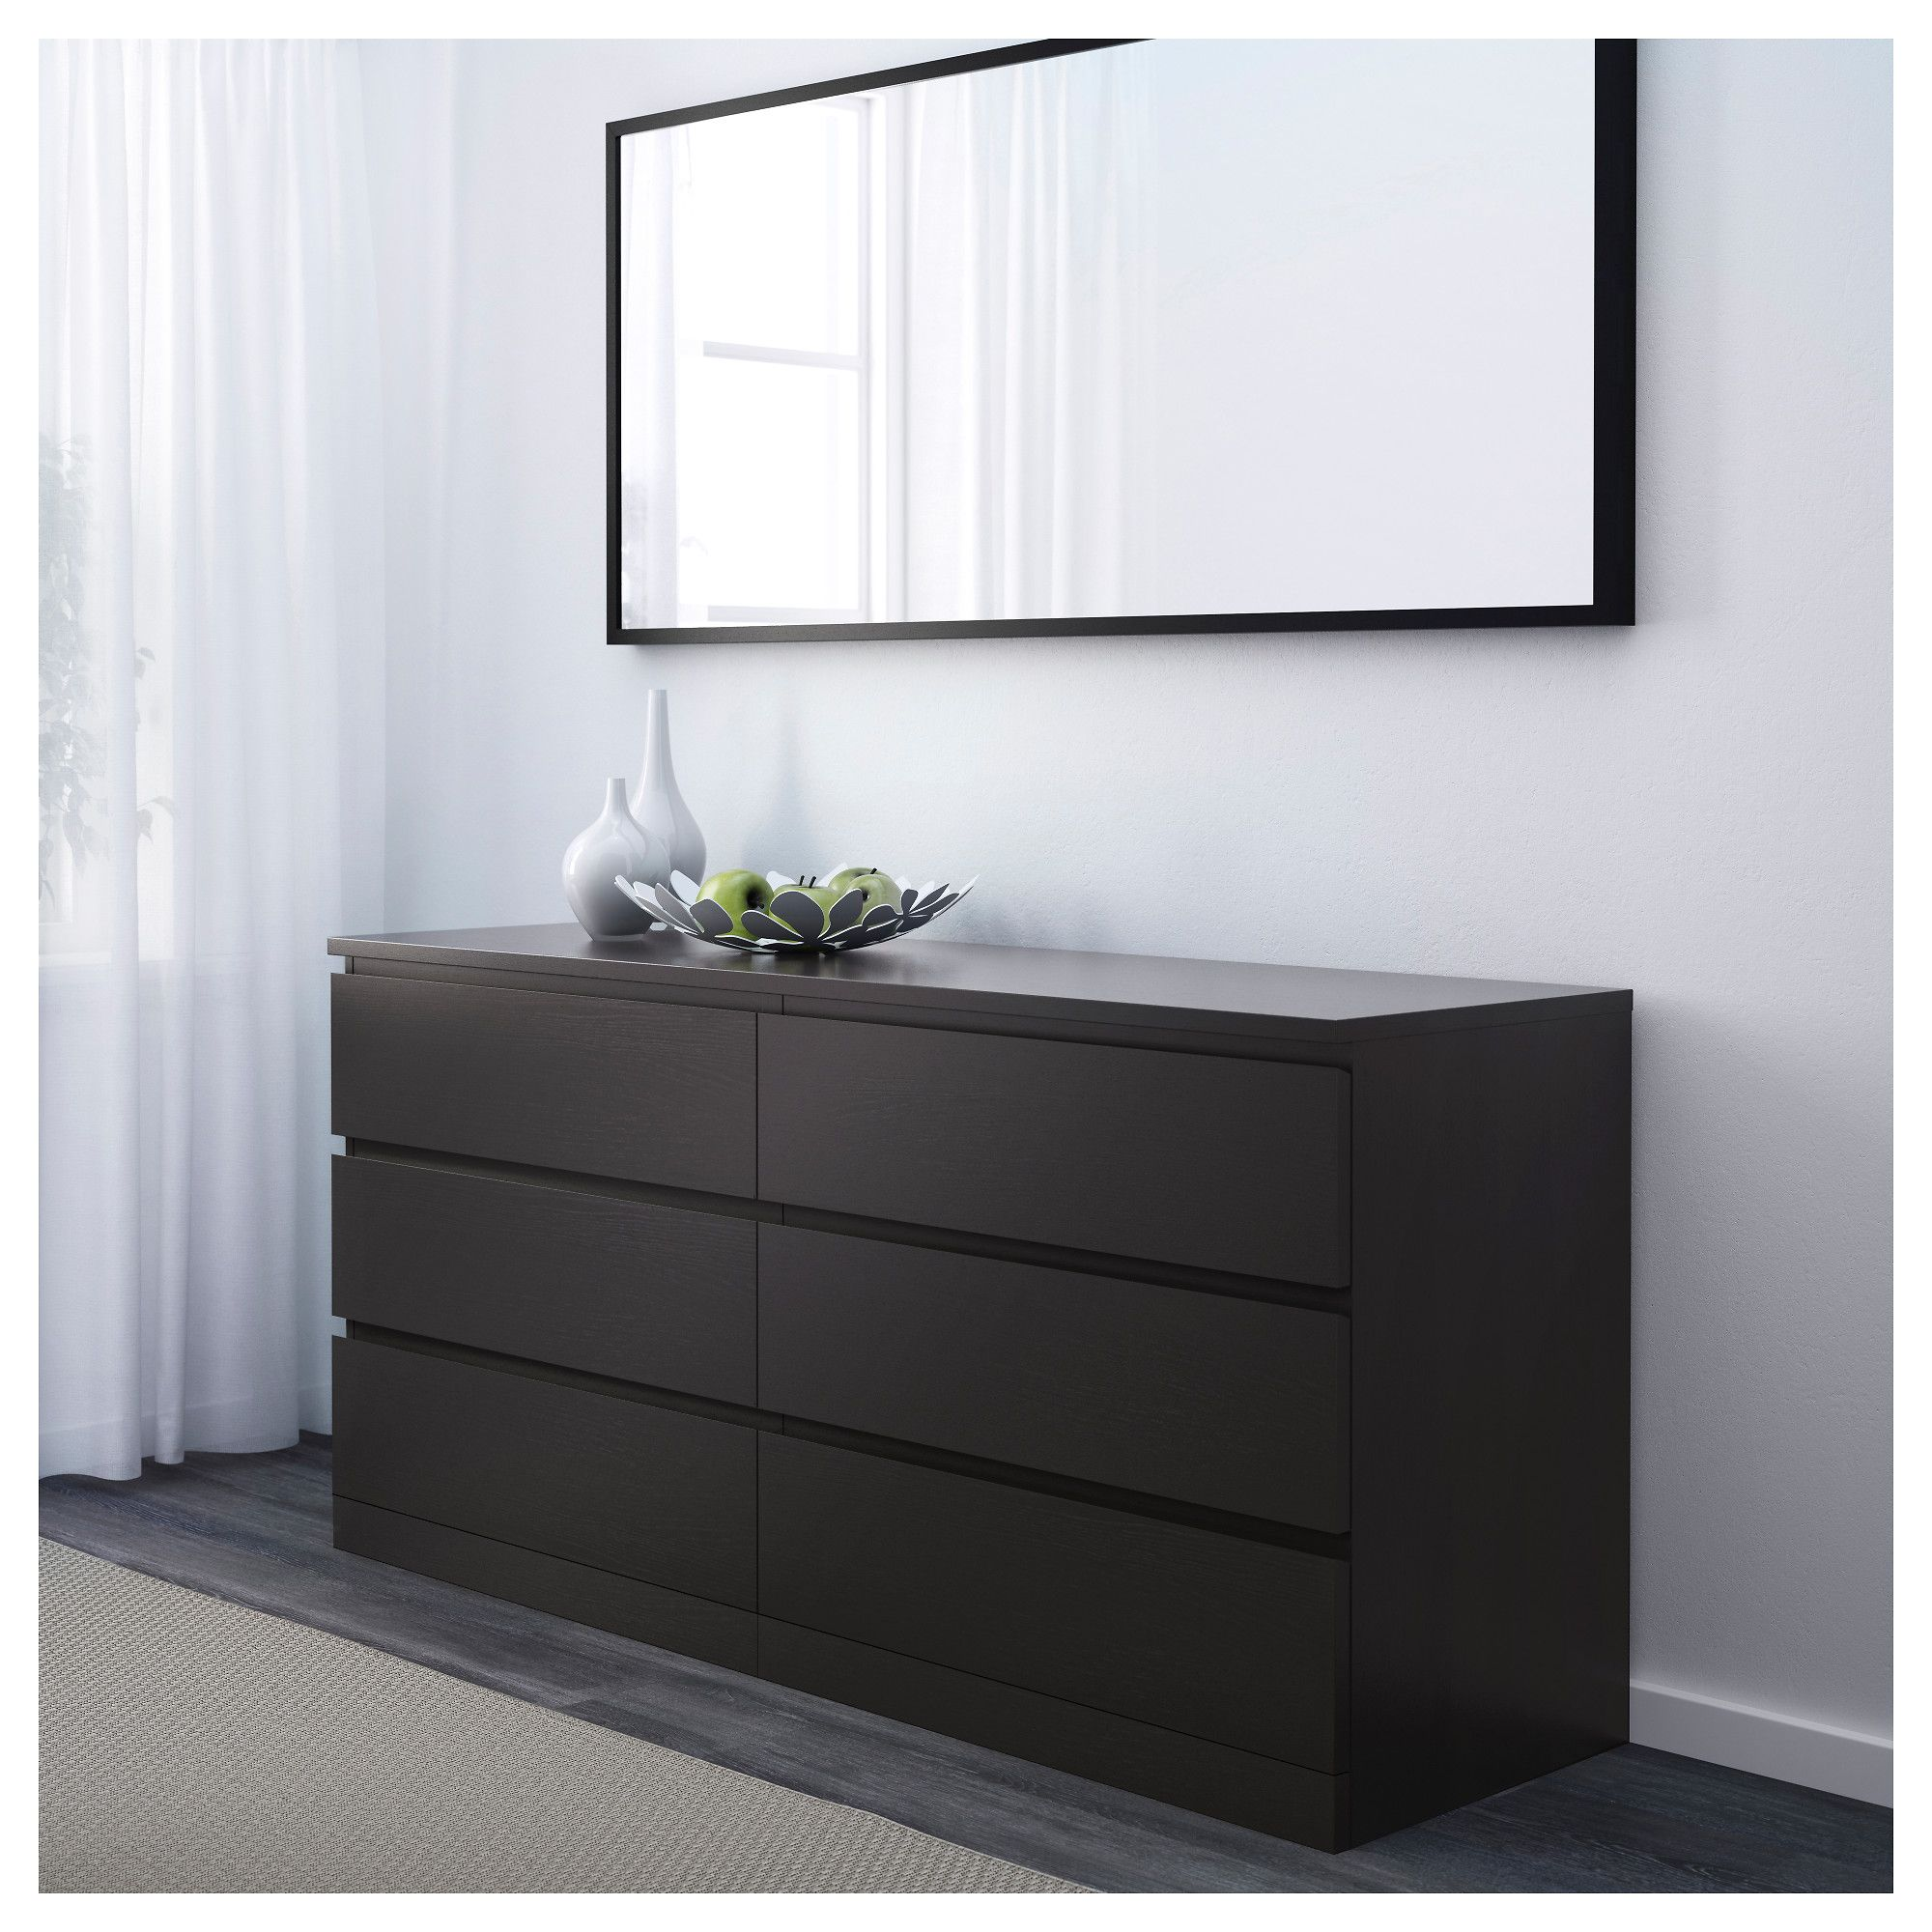 Malm 6 Drawer Dresser Black Brown 63x30 3 4 160x78 Cm